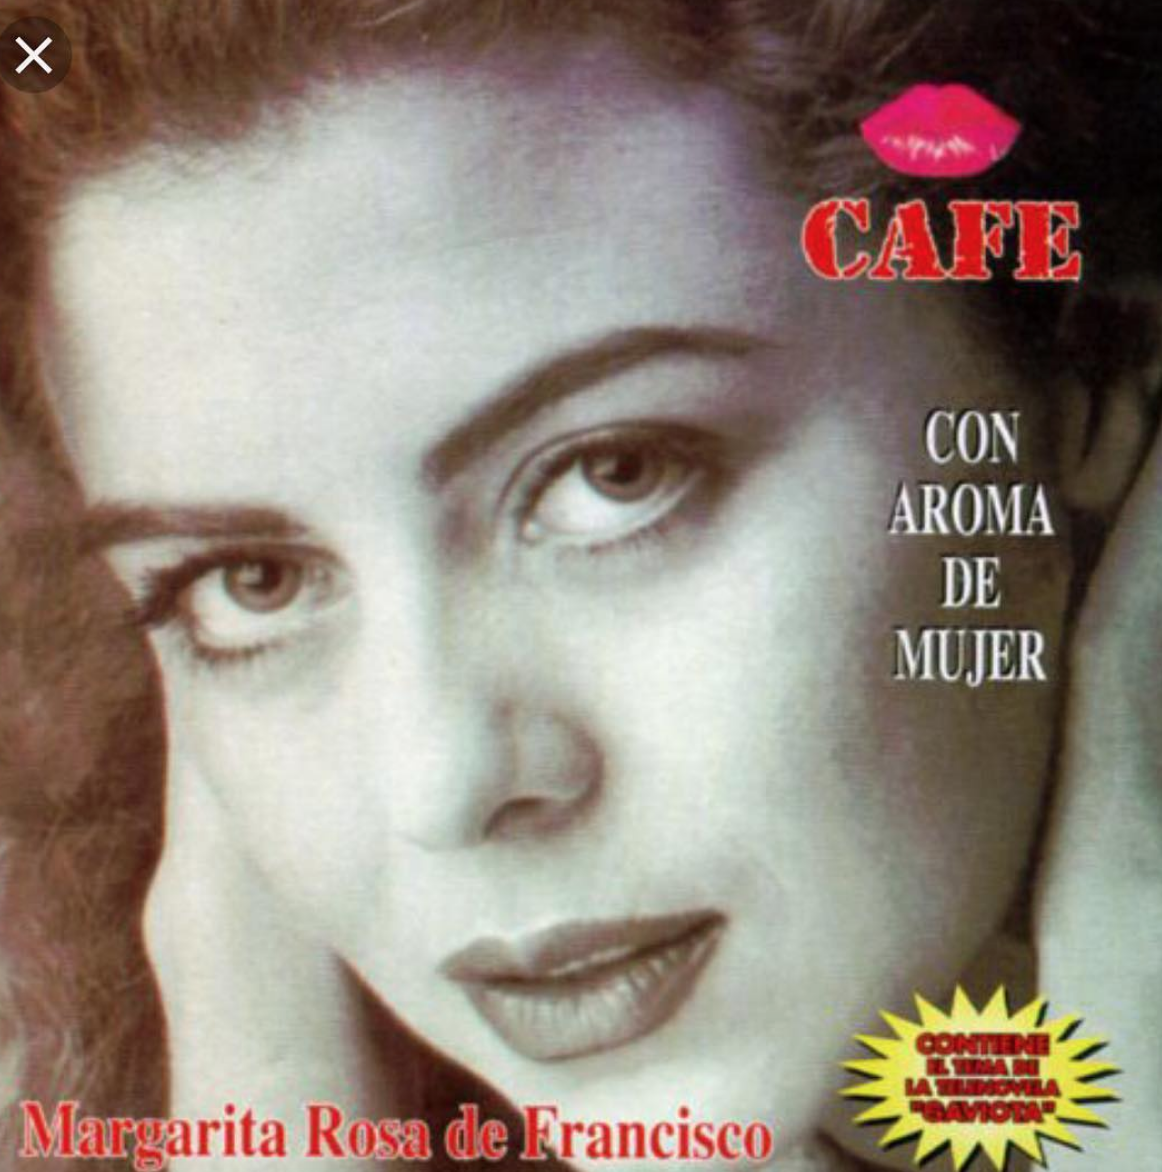 Margarita Rosa de Francisco3